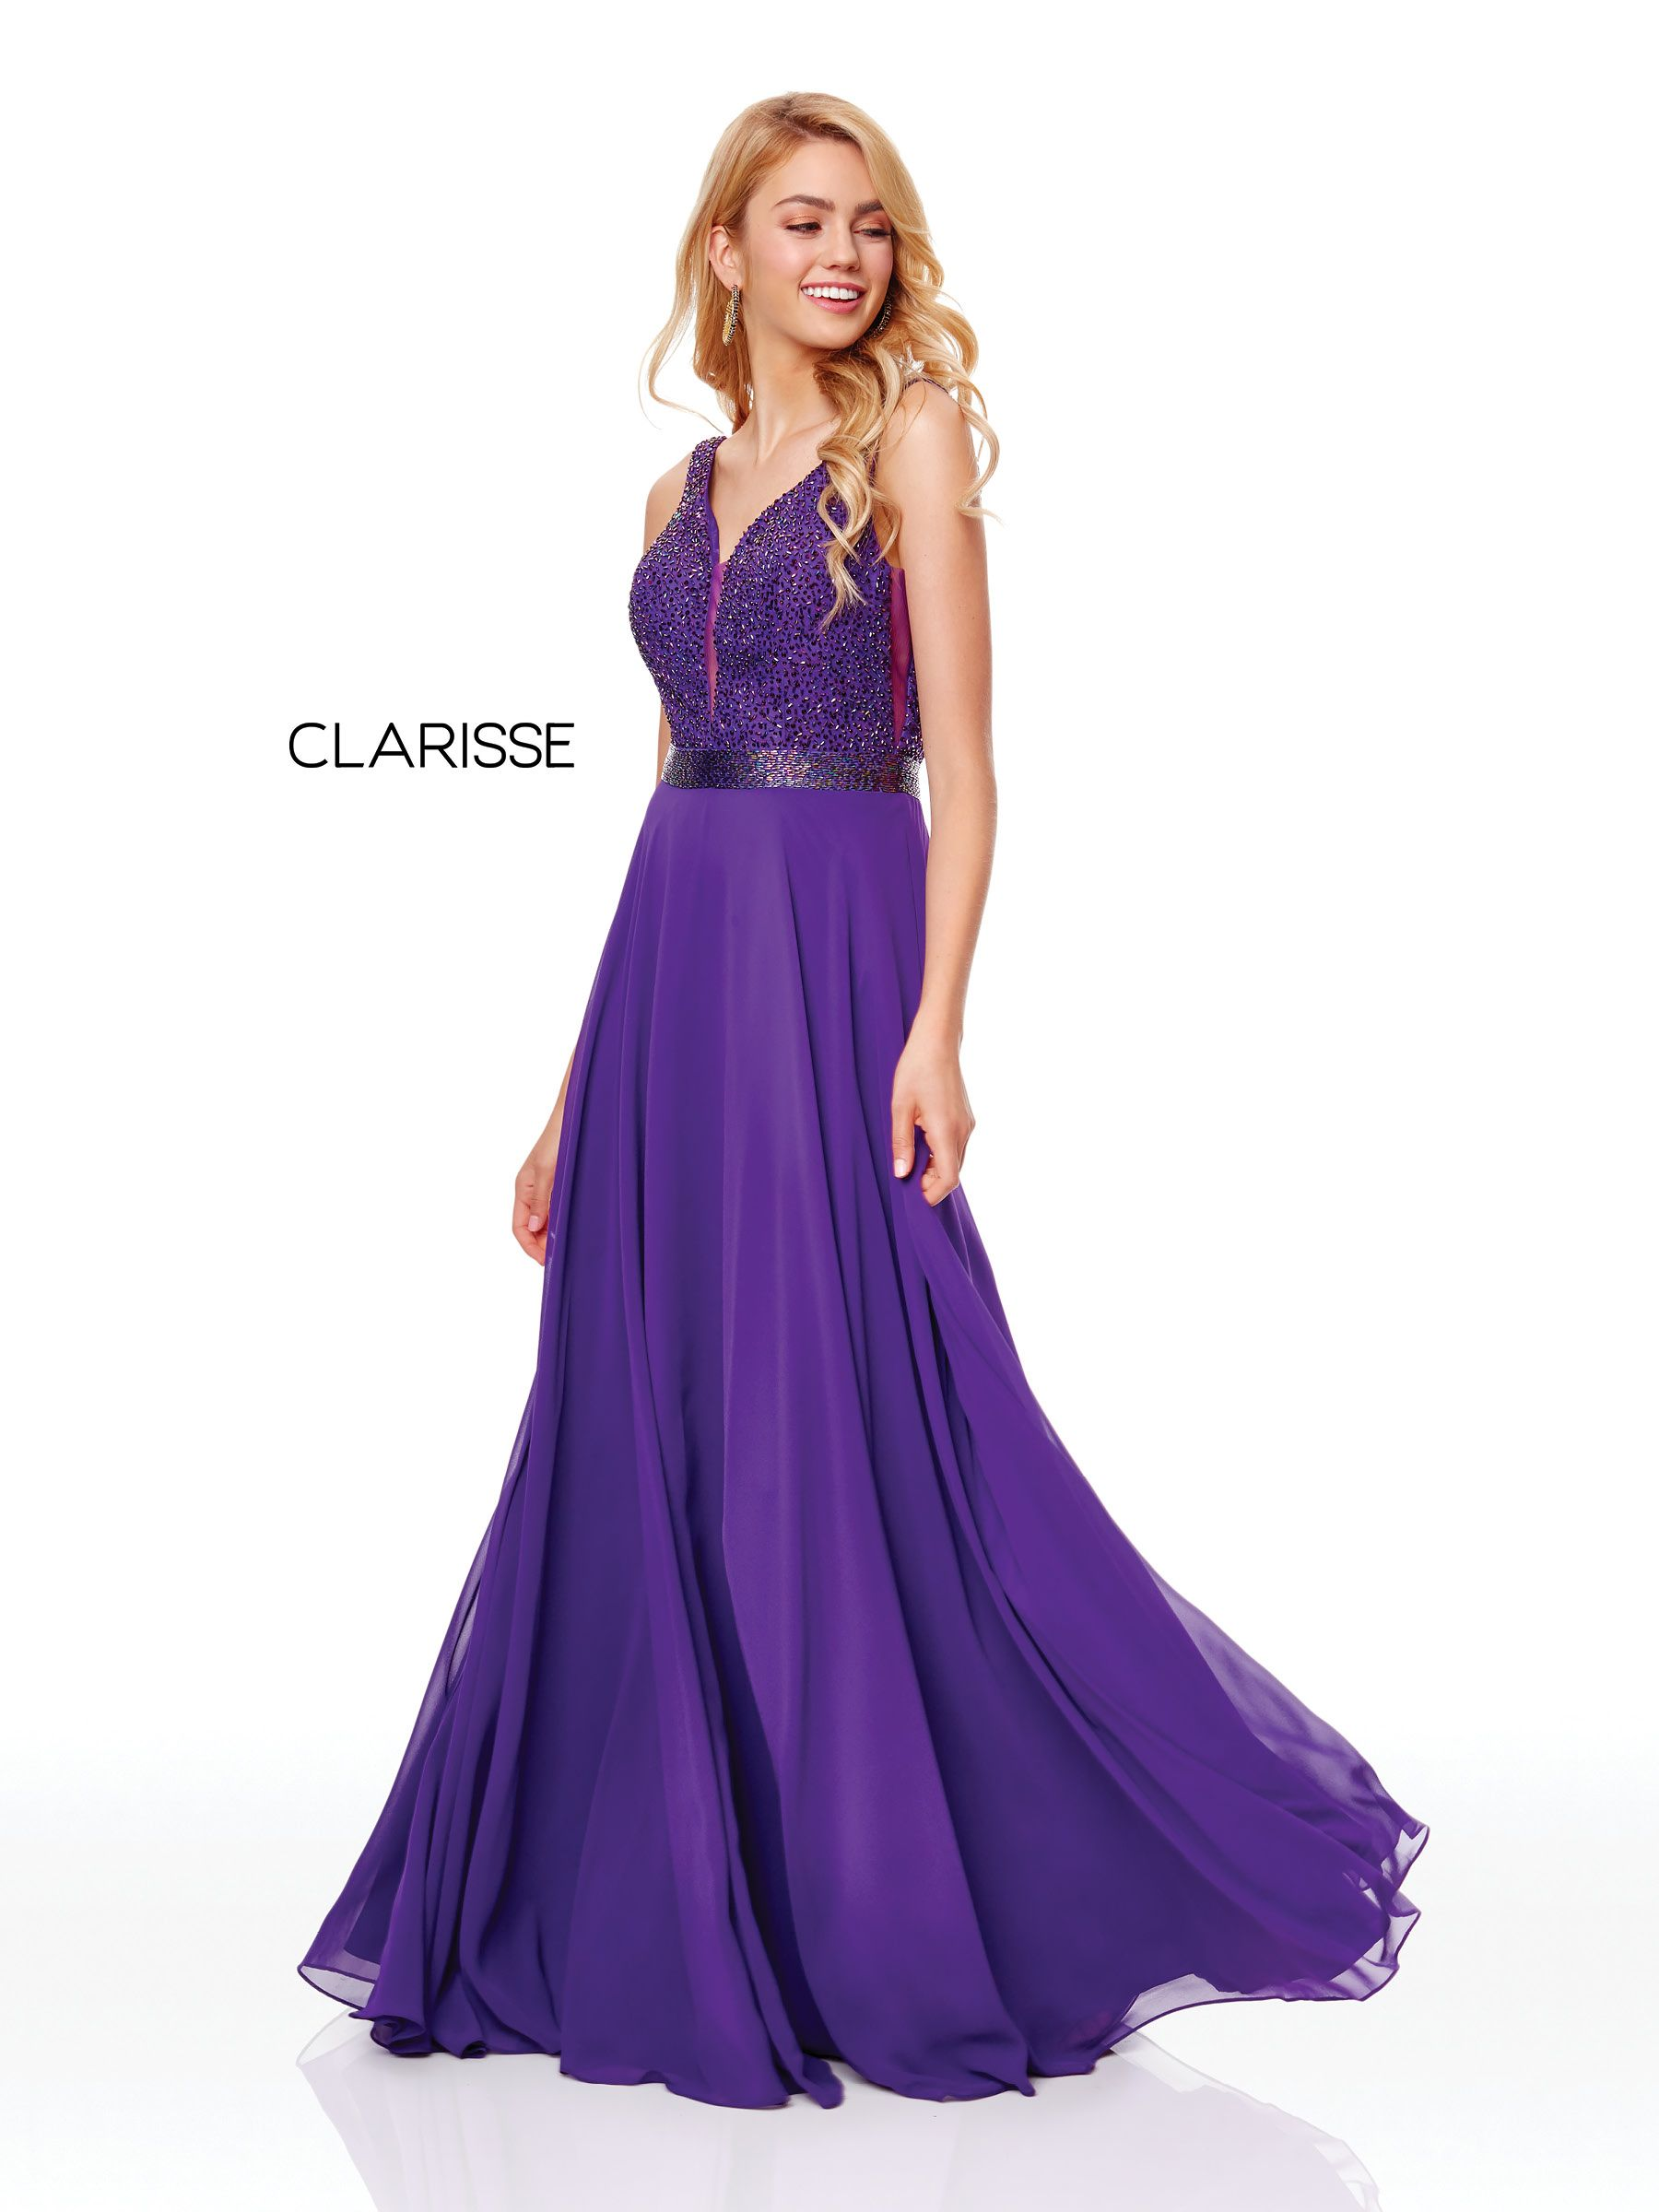 460d4de8bd9f 3779 - Amethyst chiffon prom dress with a beaded top and low cut back